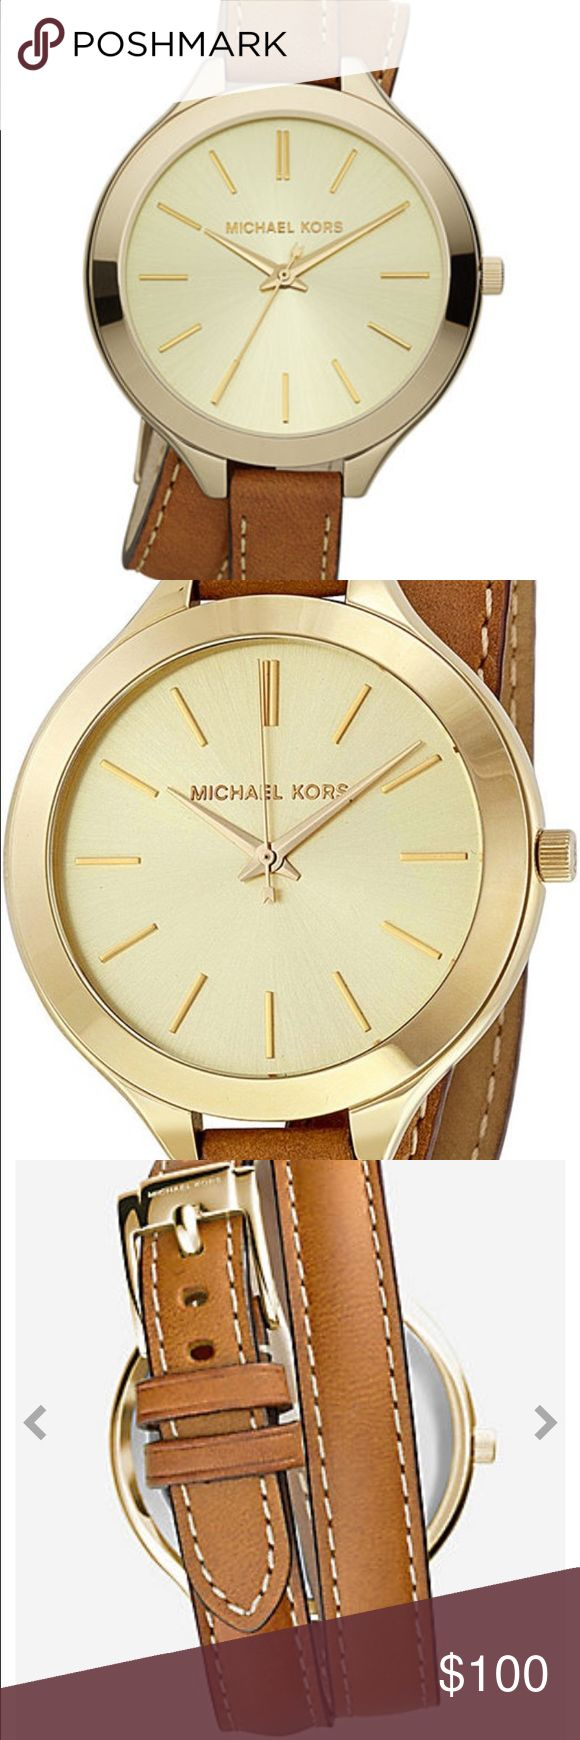 NWOT Michael Kors Women's Watch Brand new Michael Kors watch with slim double leather strap that wraps beautifully around the wrist. The original plastic is still on the face and comes with Michael Kors box. Battery does need to be replaced. Great for everyday use! Michael Kors Accessories Watches